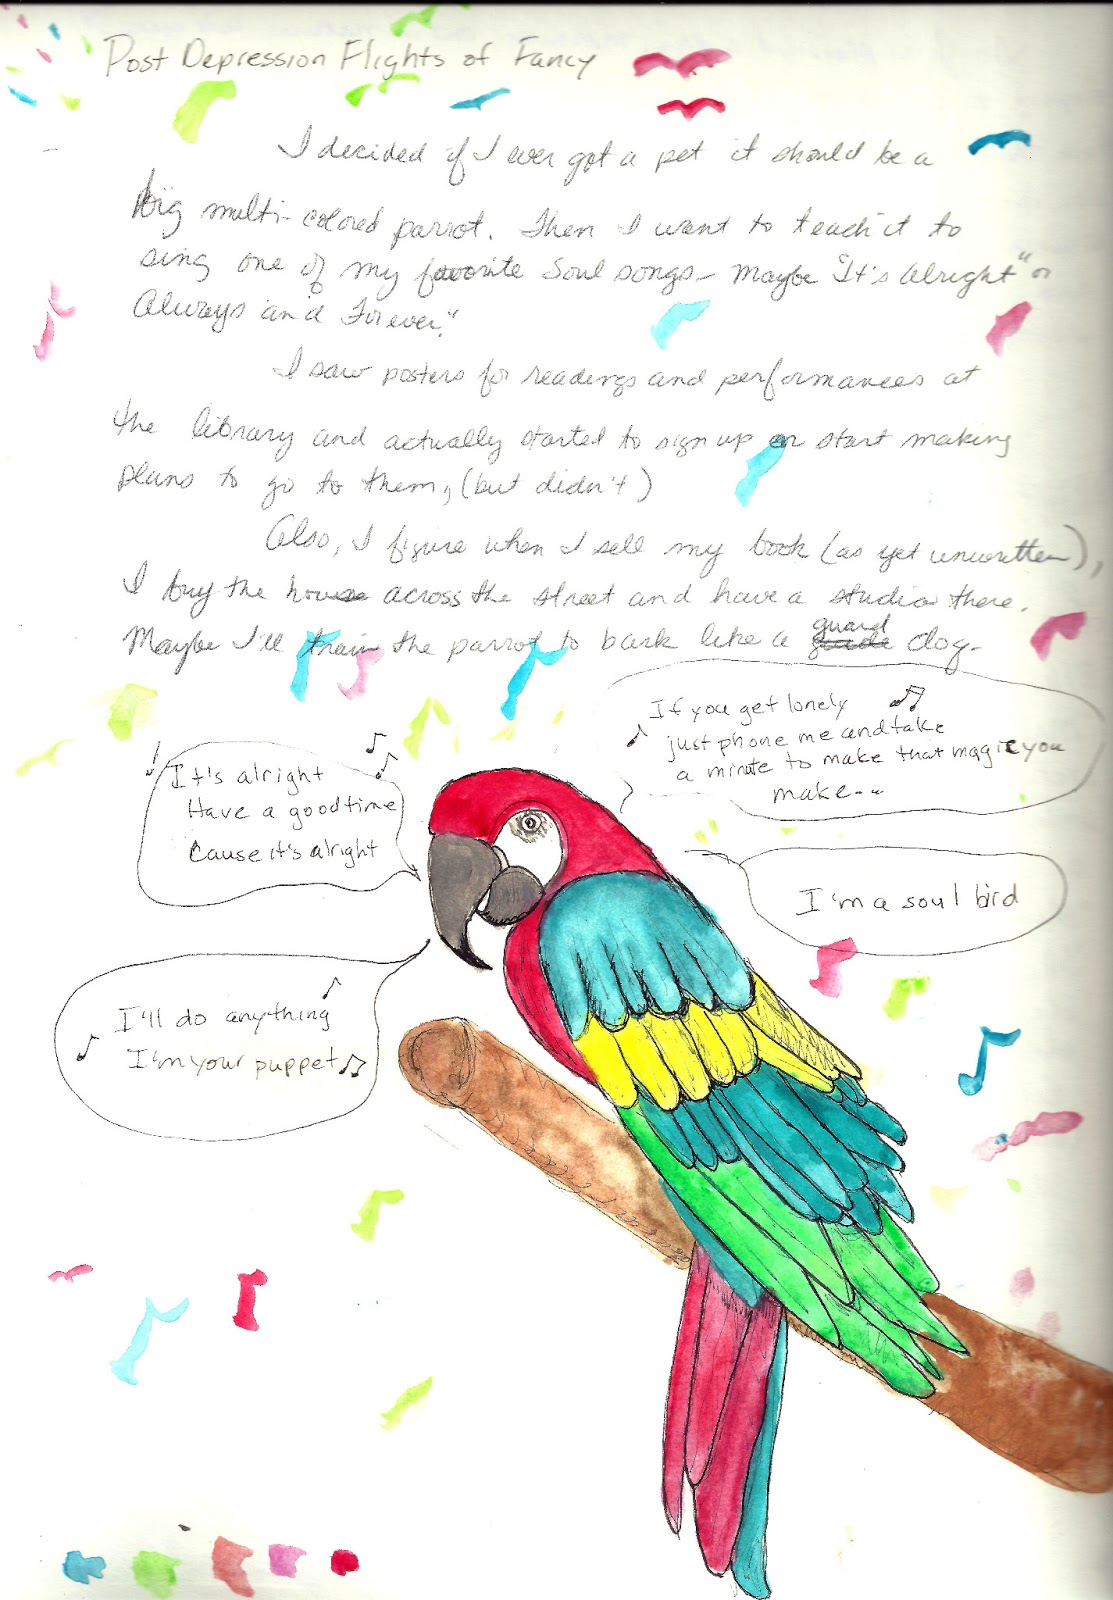 my favourite pet parrot essay